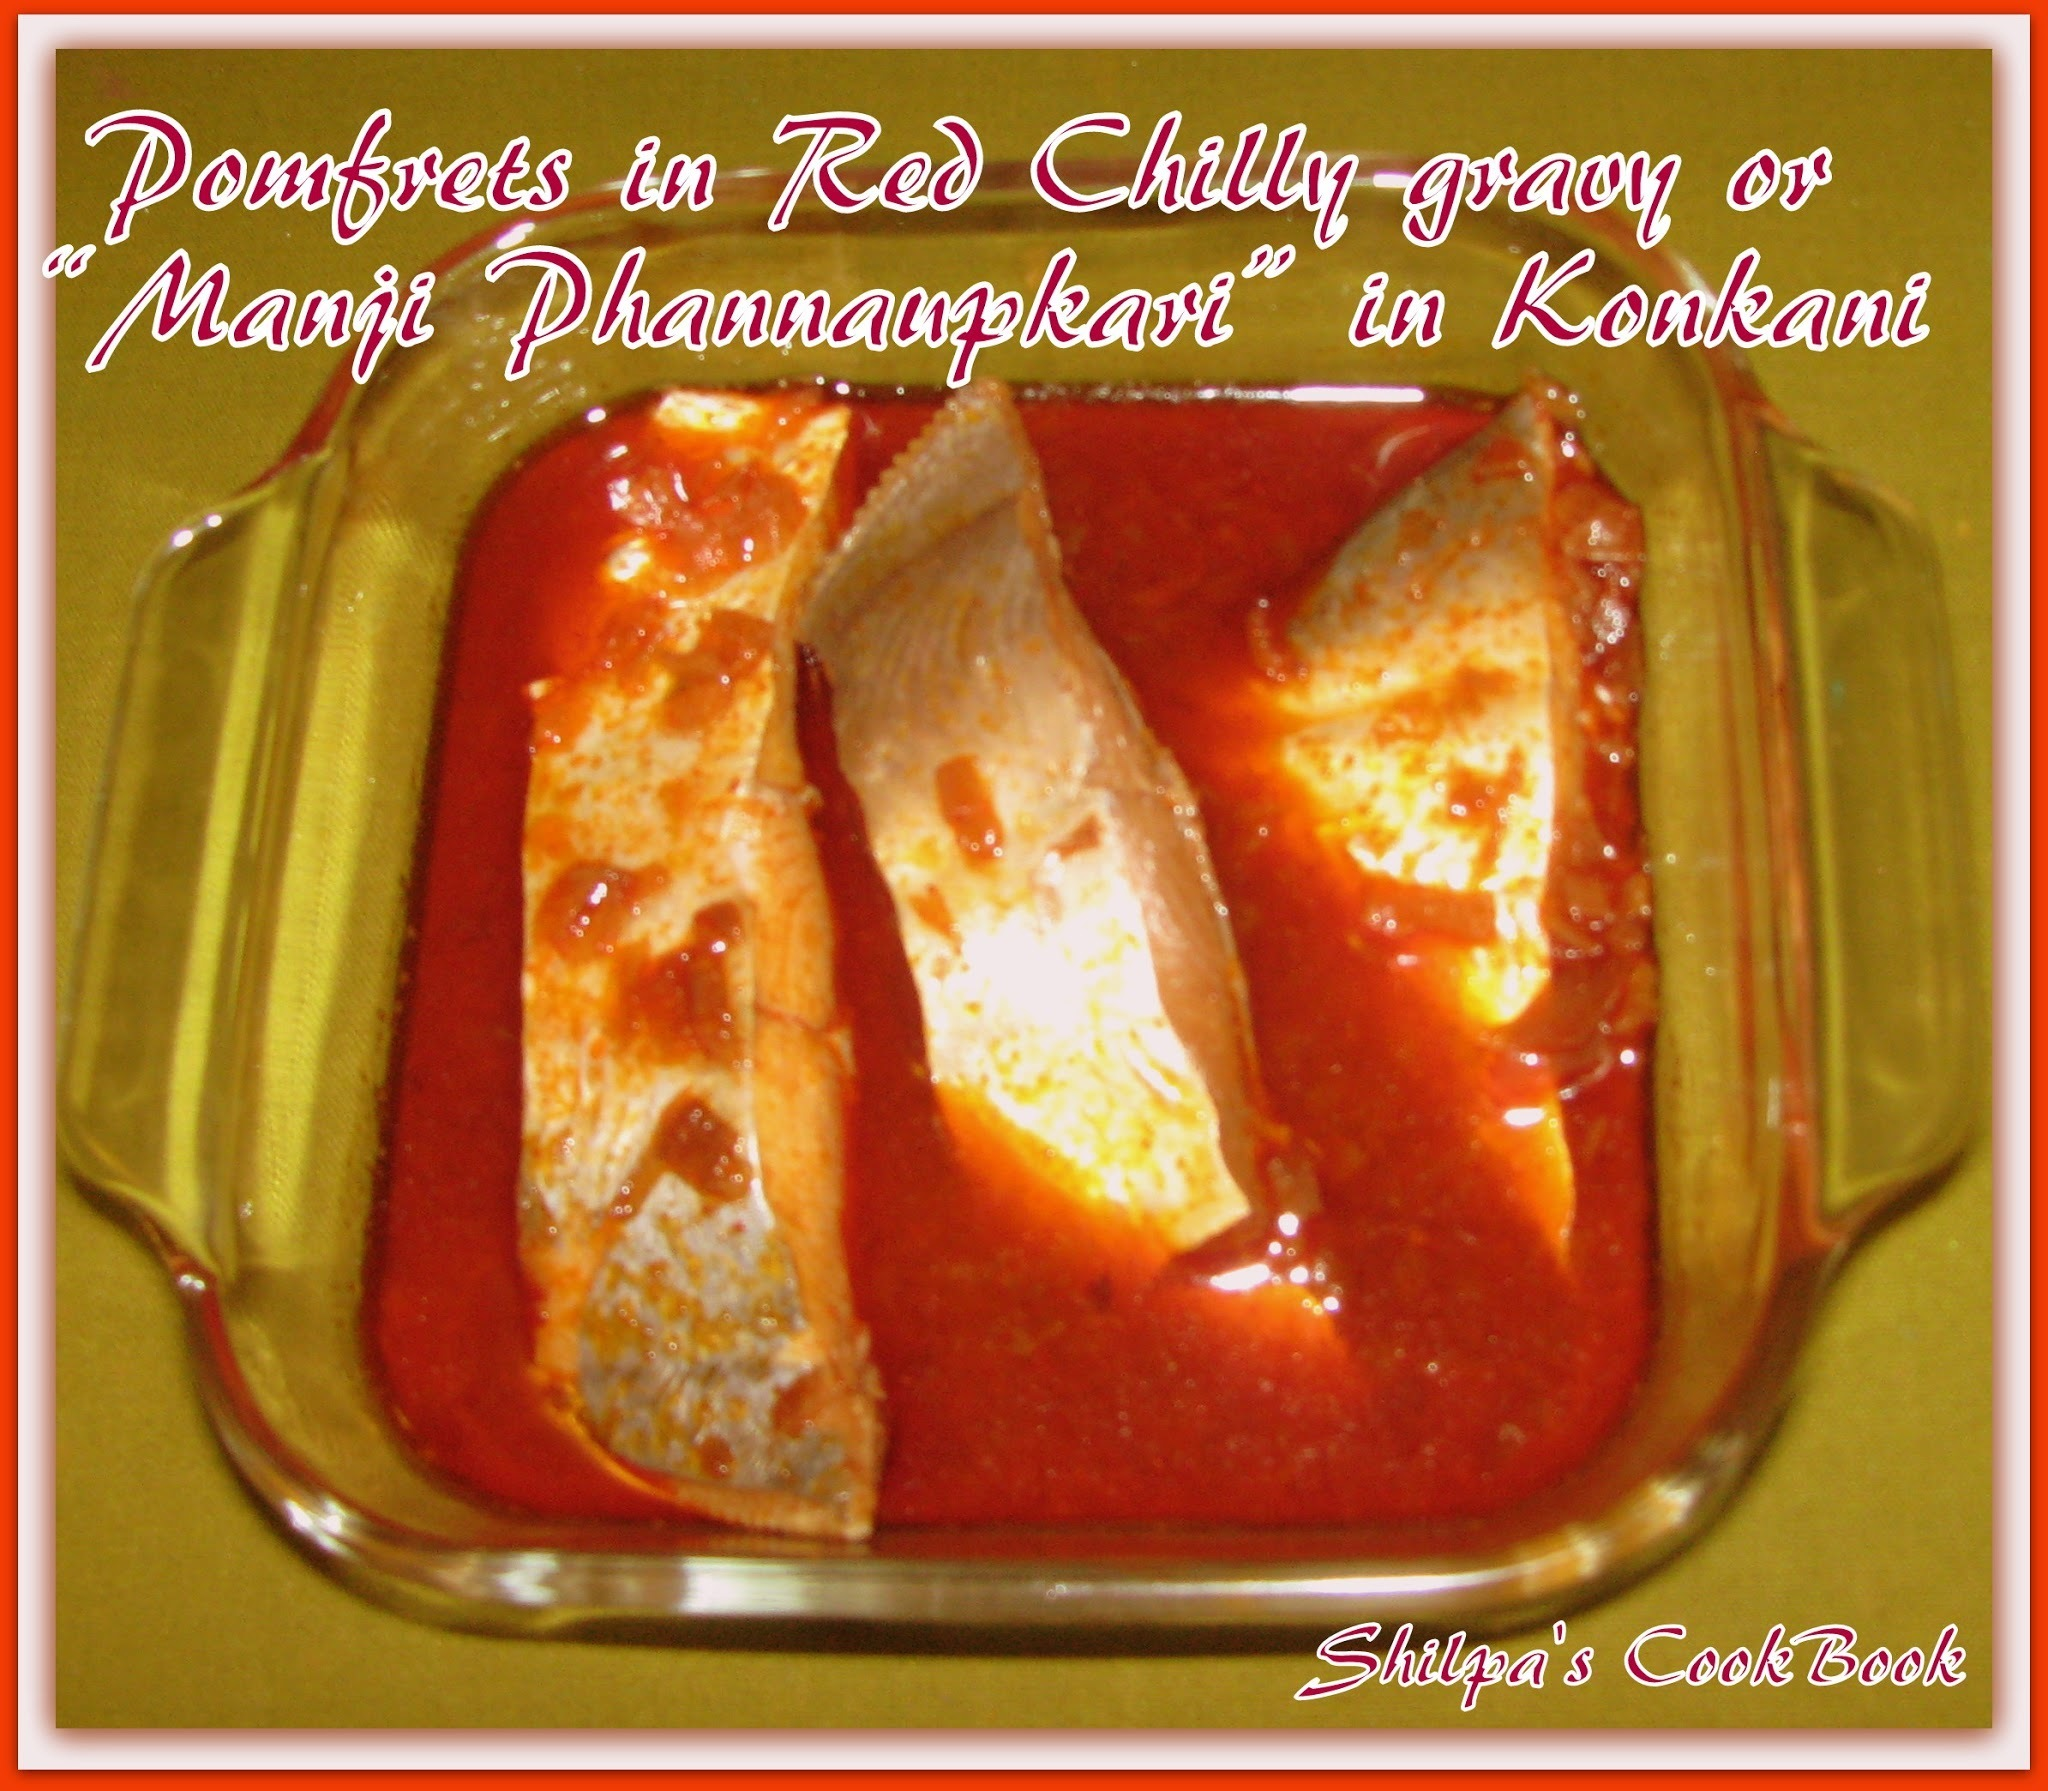 "Pomfrets in Tangy Red Chilly Gravy or ""Manji Phannaupkari"" in Konkani"